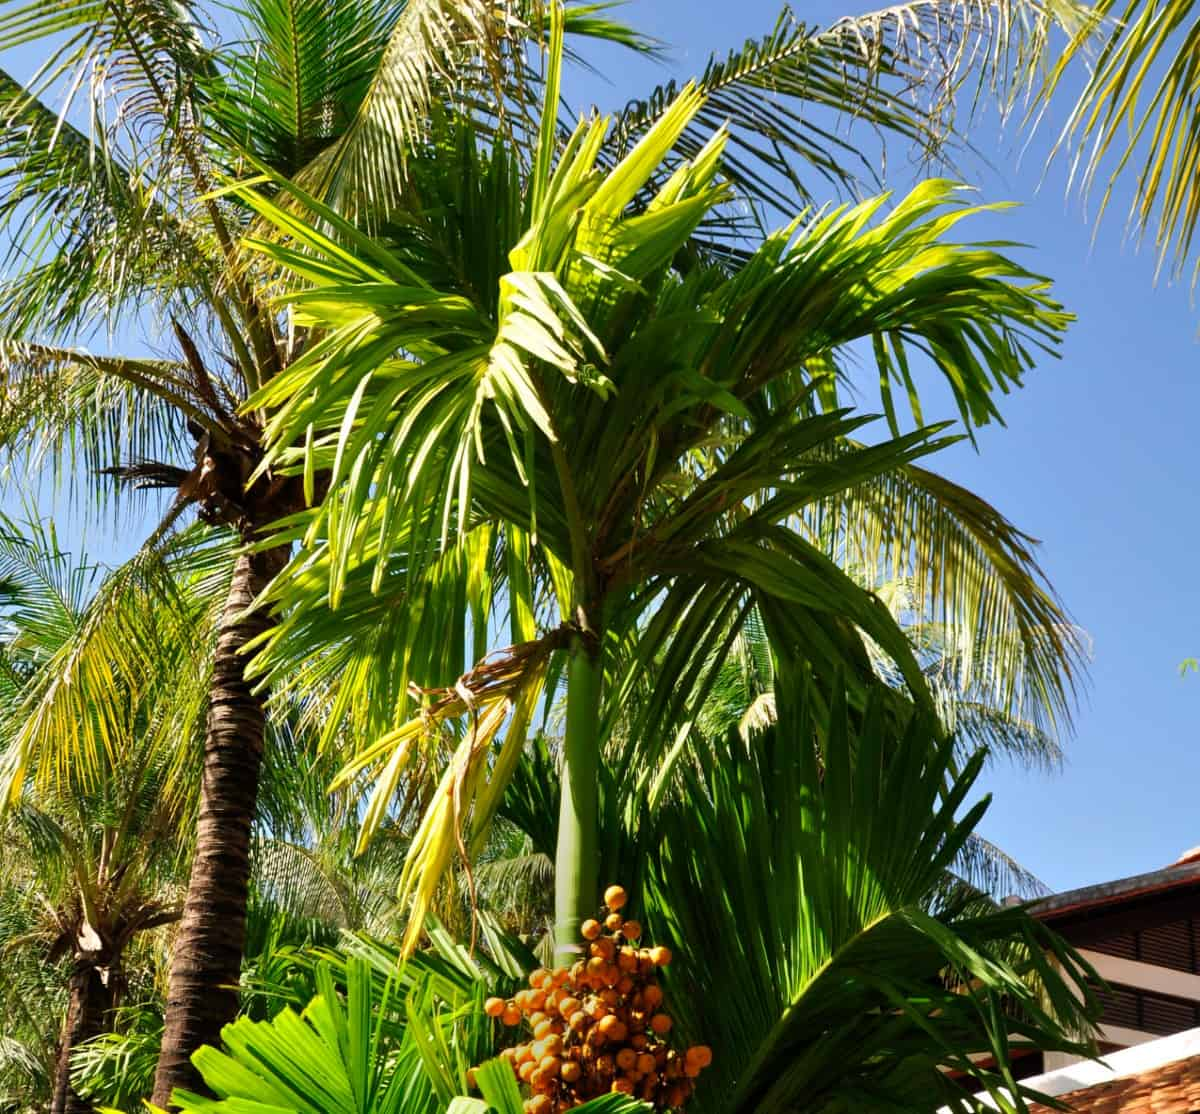 The jelly palm is an evergreen palm tree.